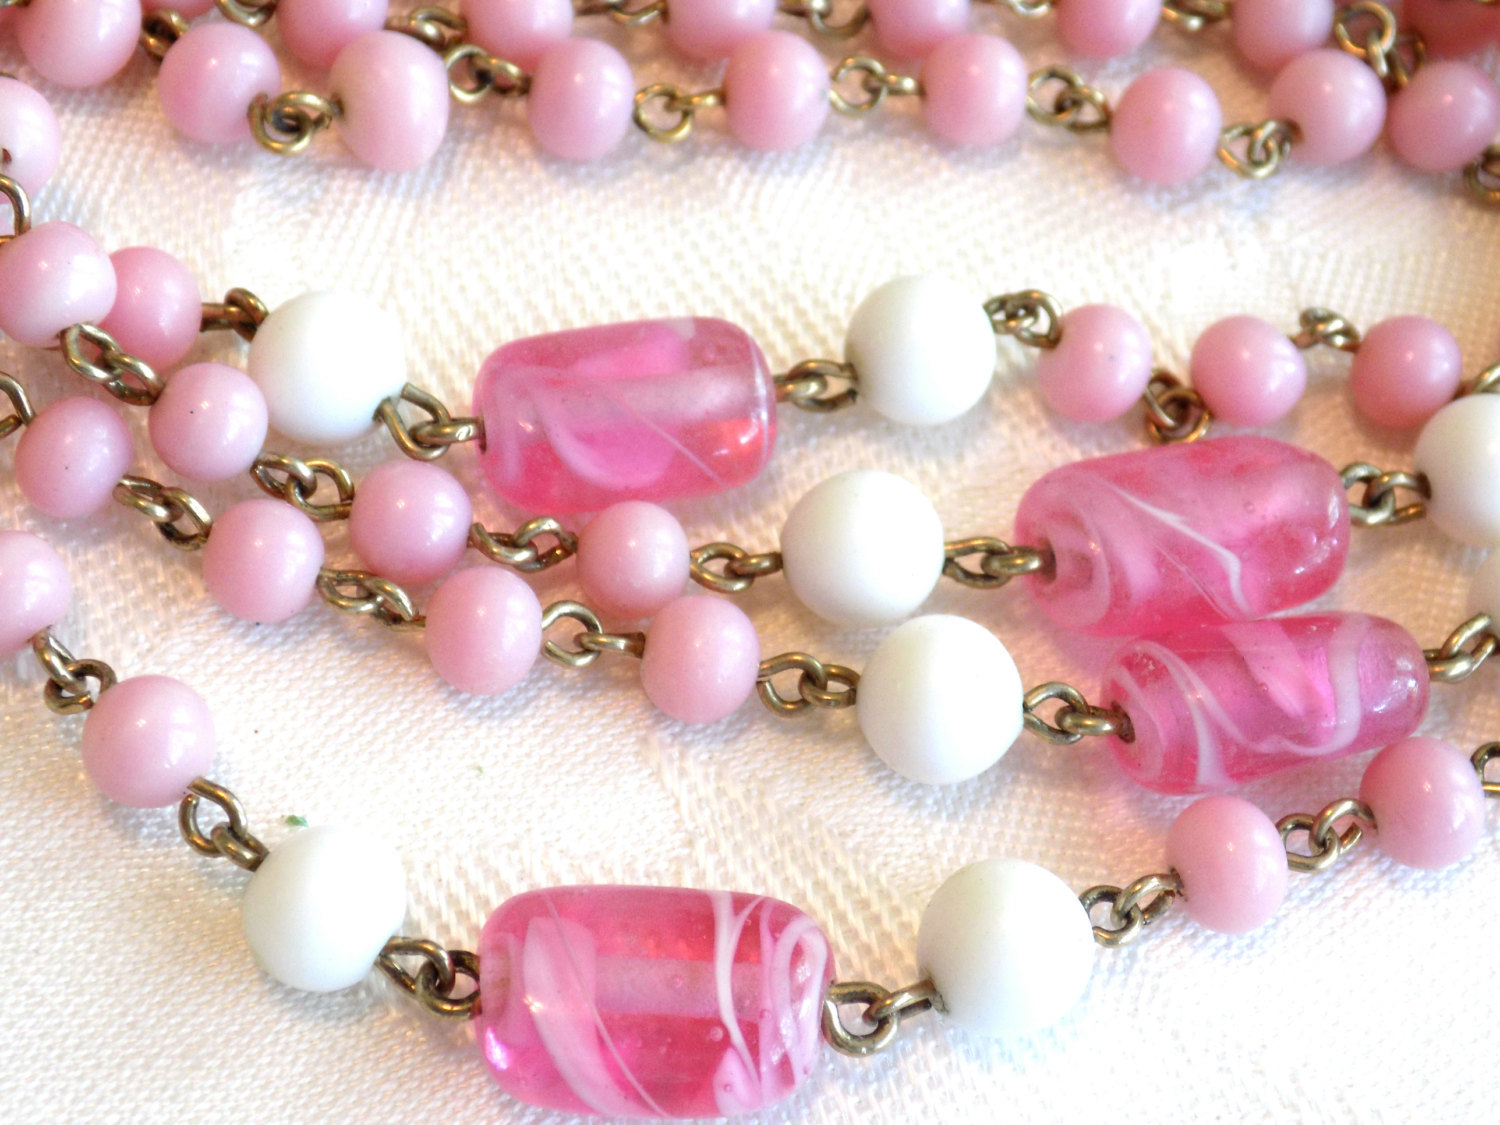 Vintage Coro Beaded Necklace Pink and White Milk Glass Beads and Swirled Pink Gl